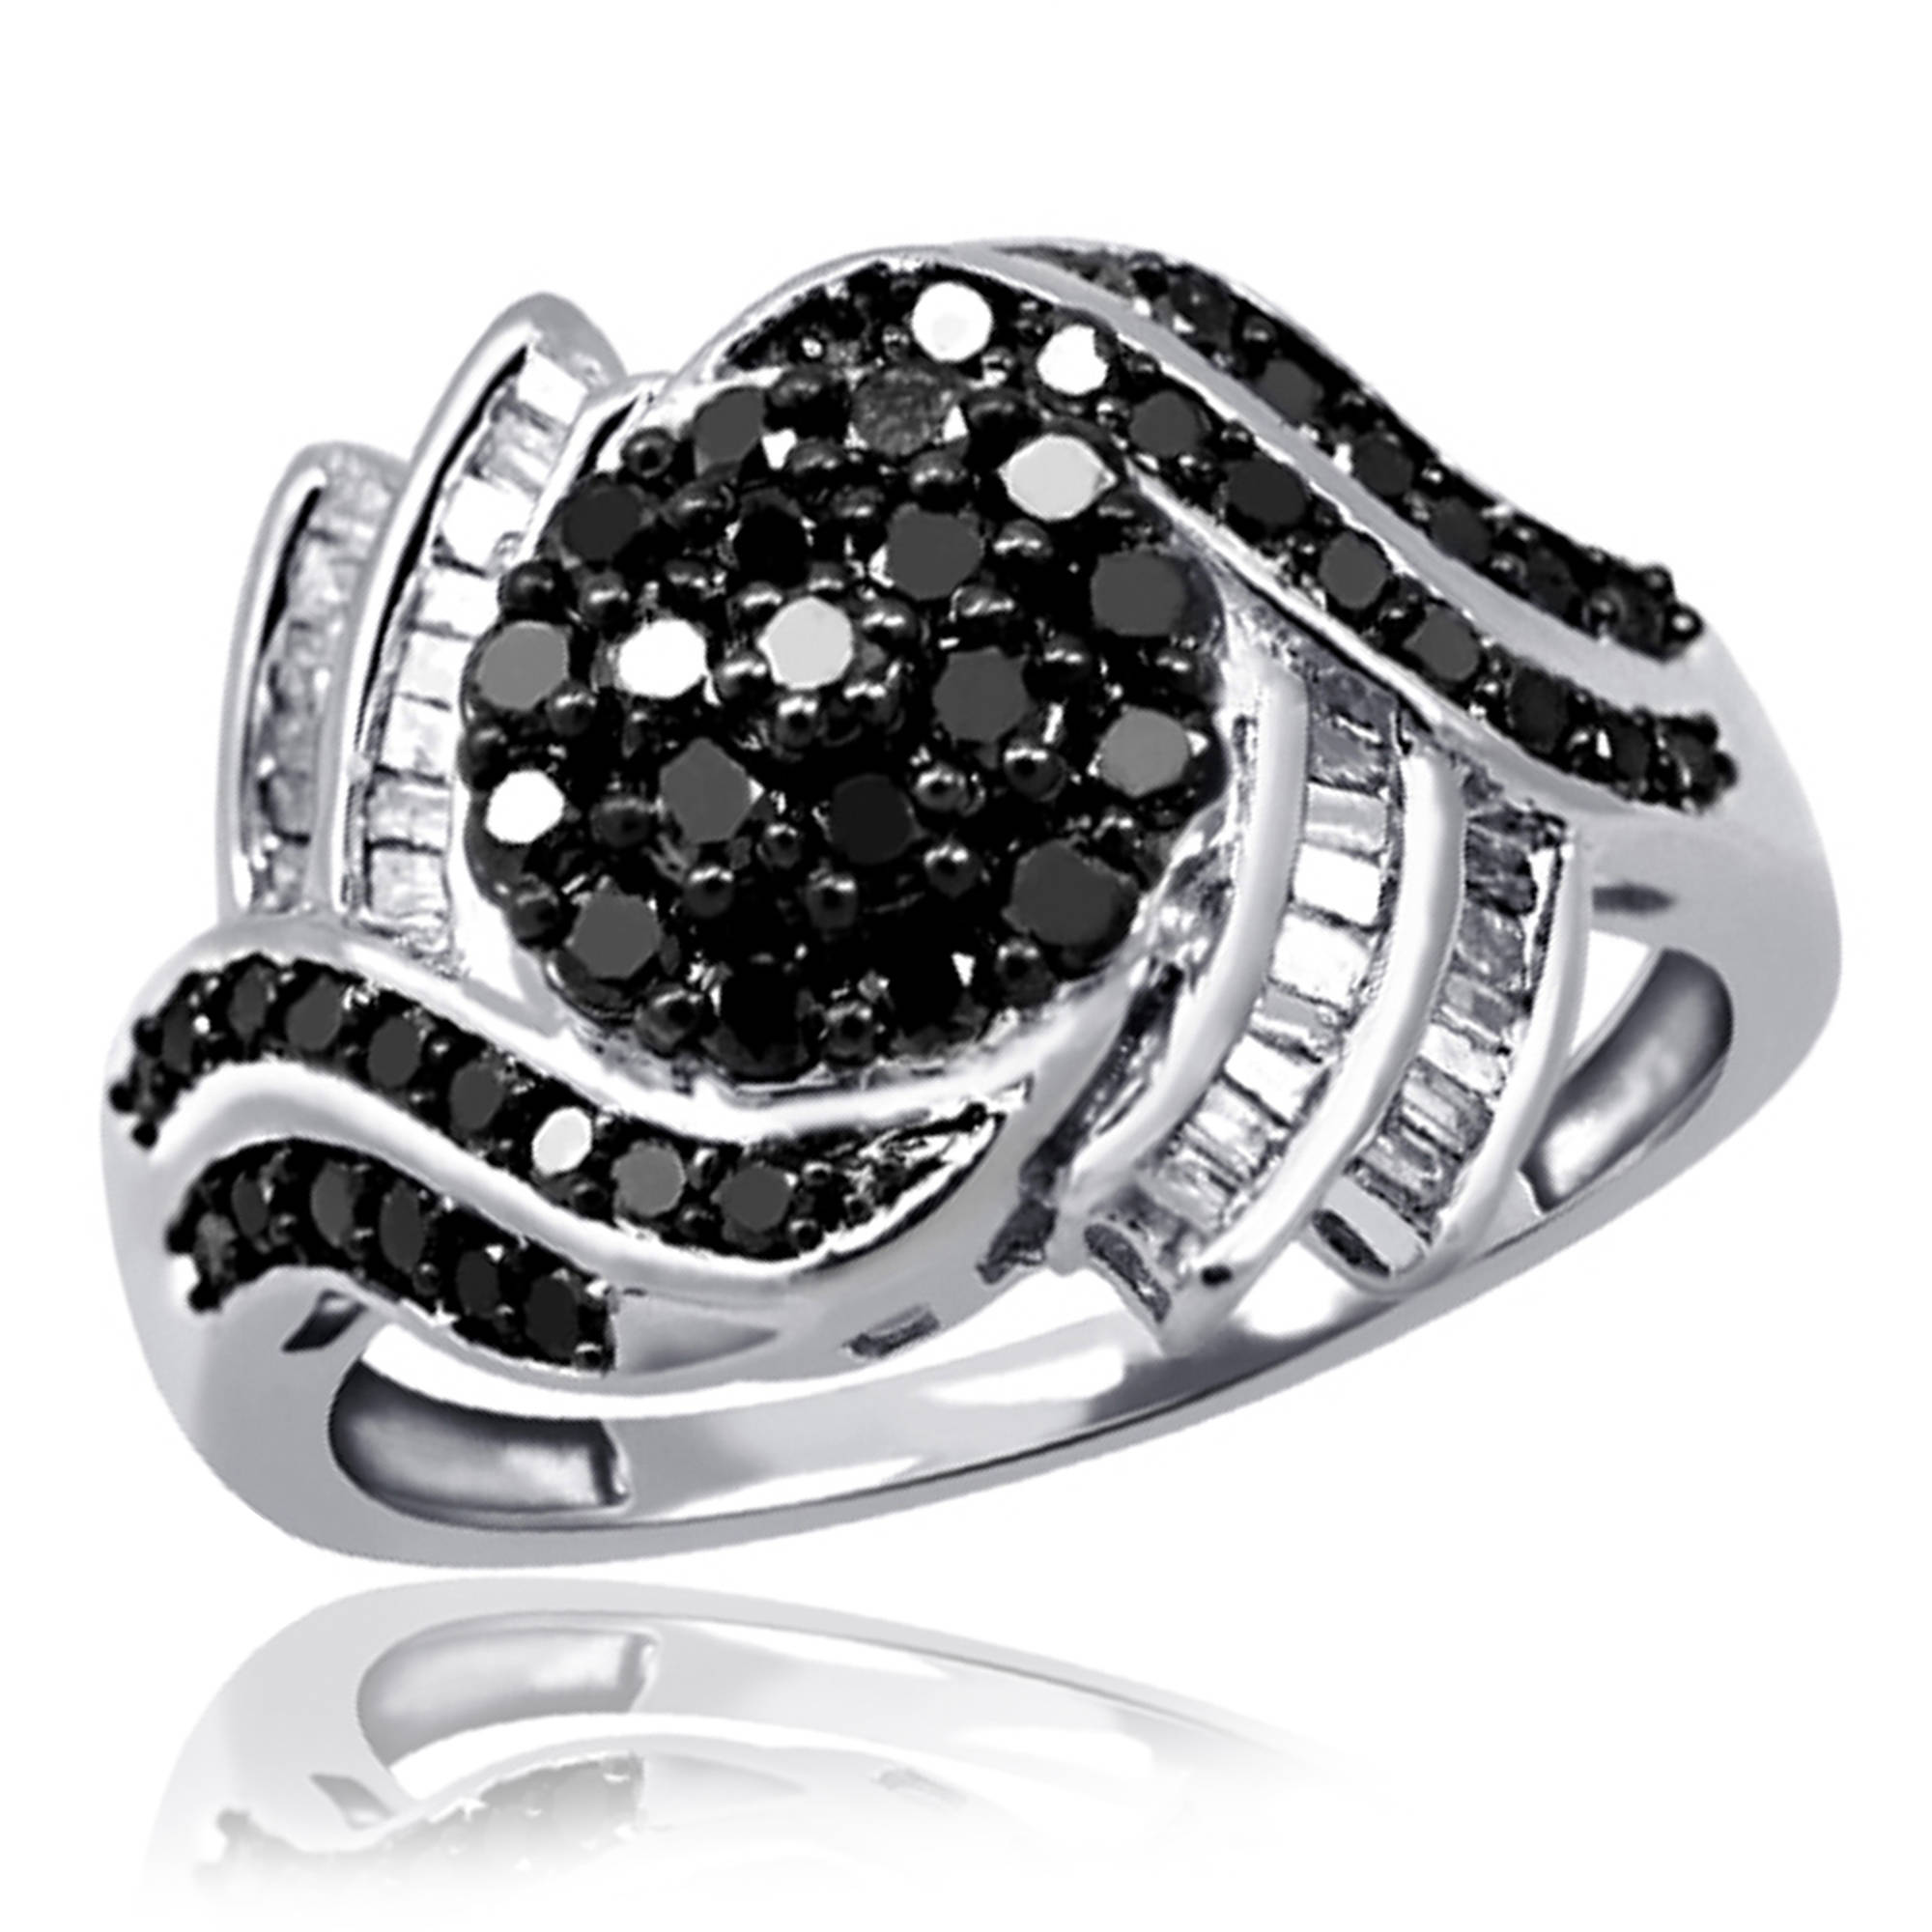 JewelersClub 1.00 CTW Round & Baguette cut Black & White Diamond Cluster Bypass Sterling Silver Ring